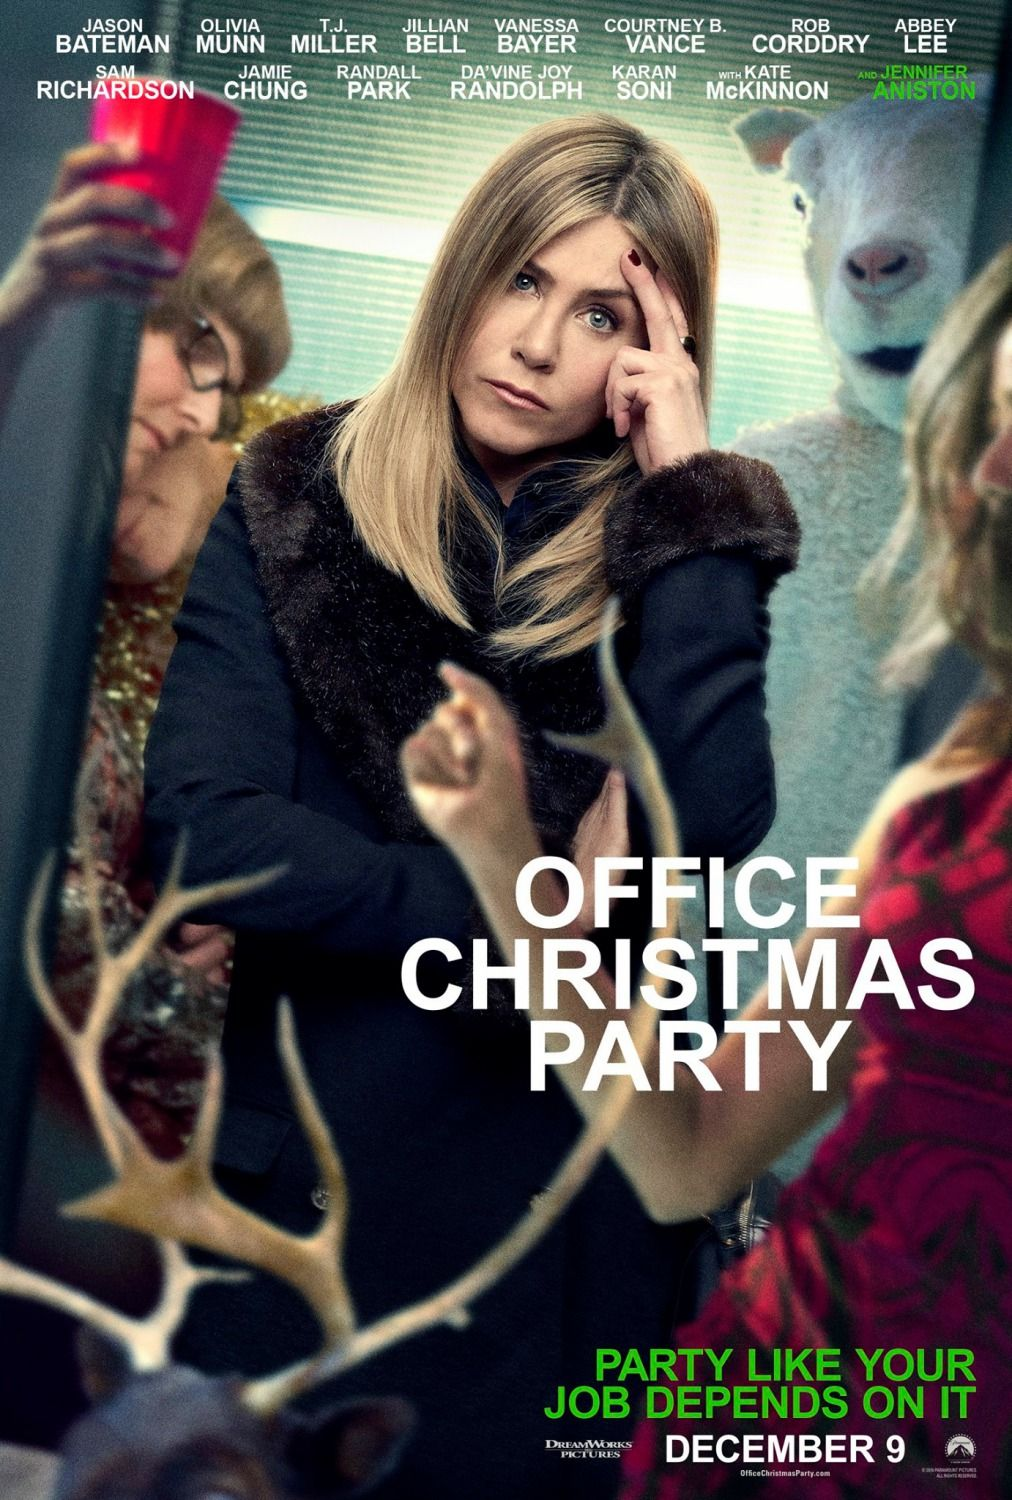 Office Christmas Party Jennifer Aniston Poster | Posters ...